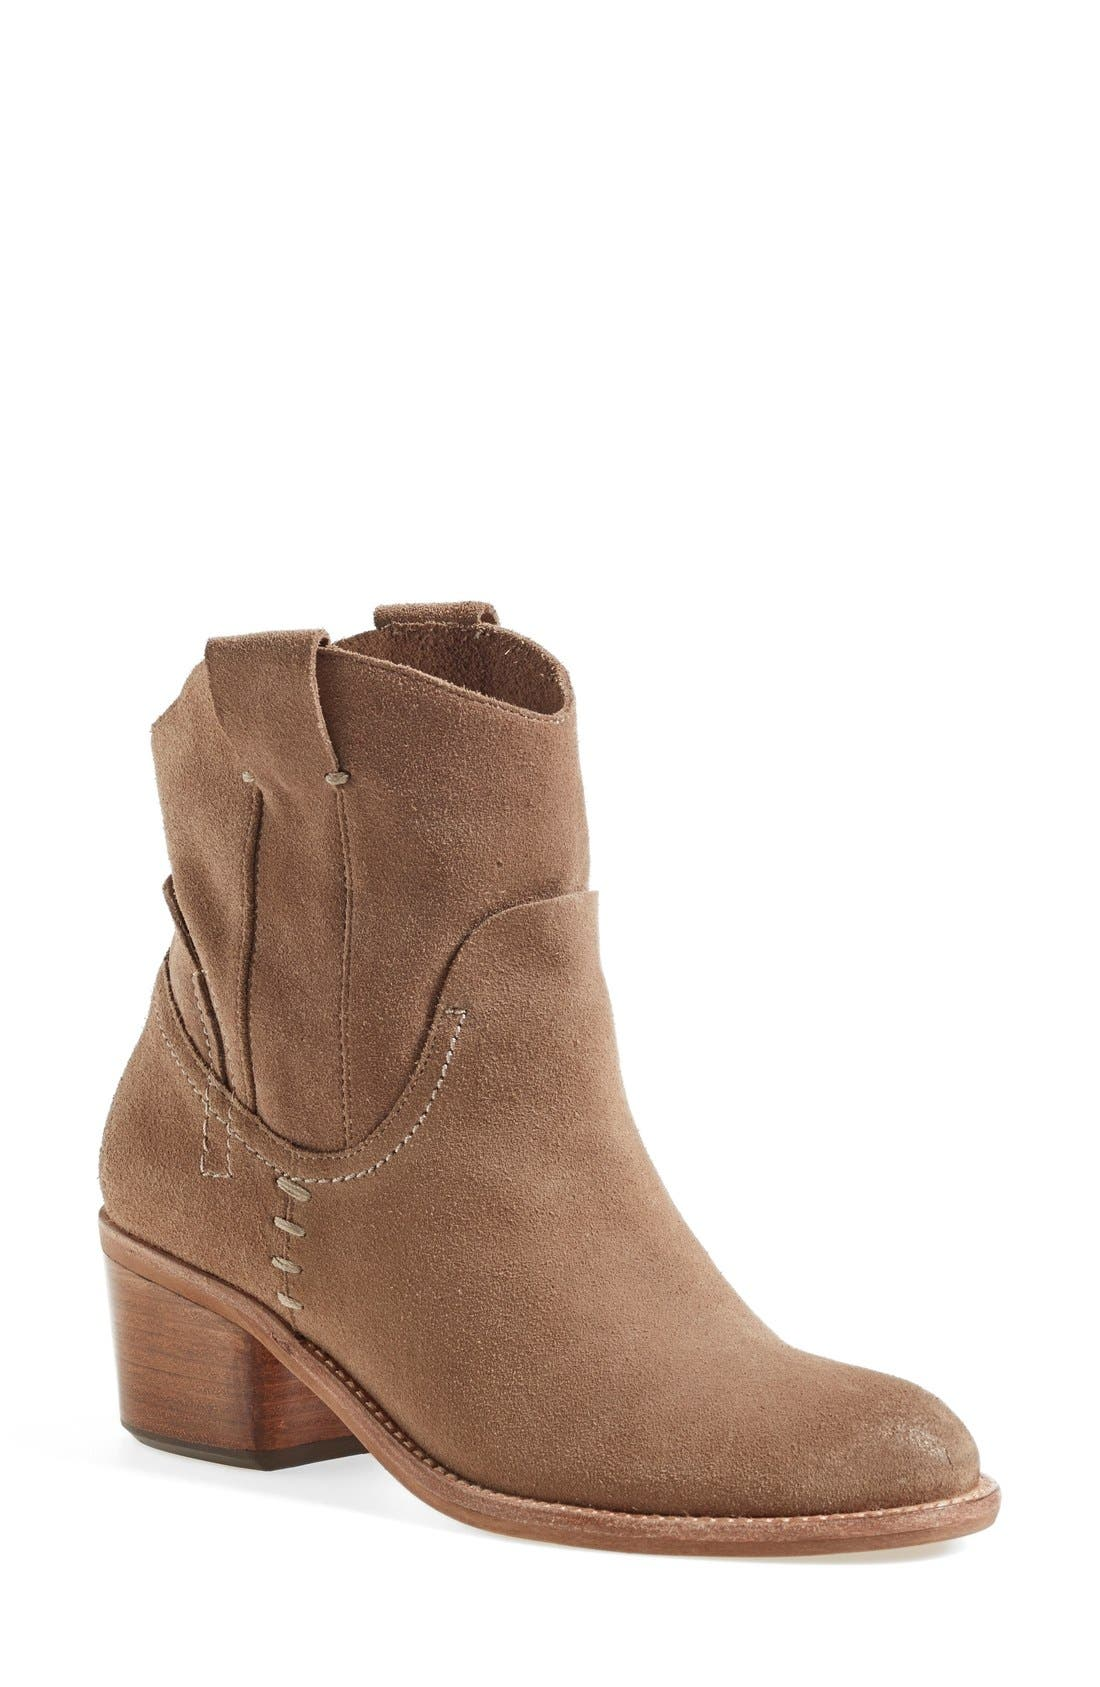 'Graham' Suede Bootie,                             Main thumbnail 1, color,                             Taupe Suede